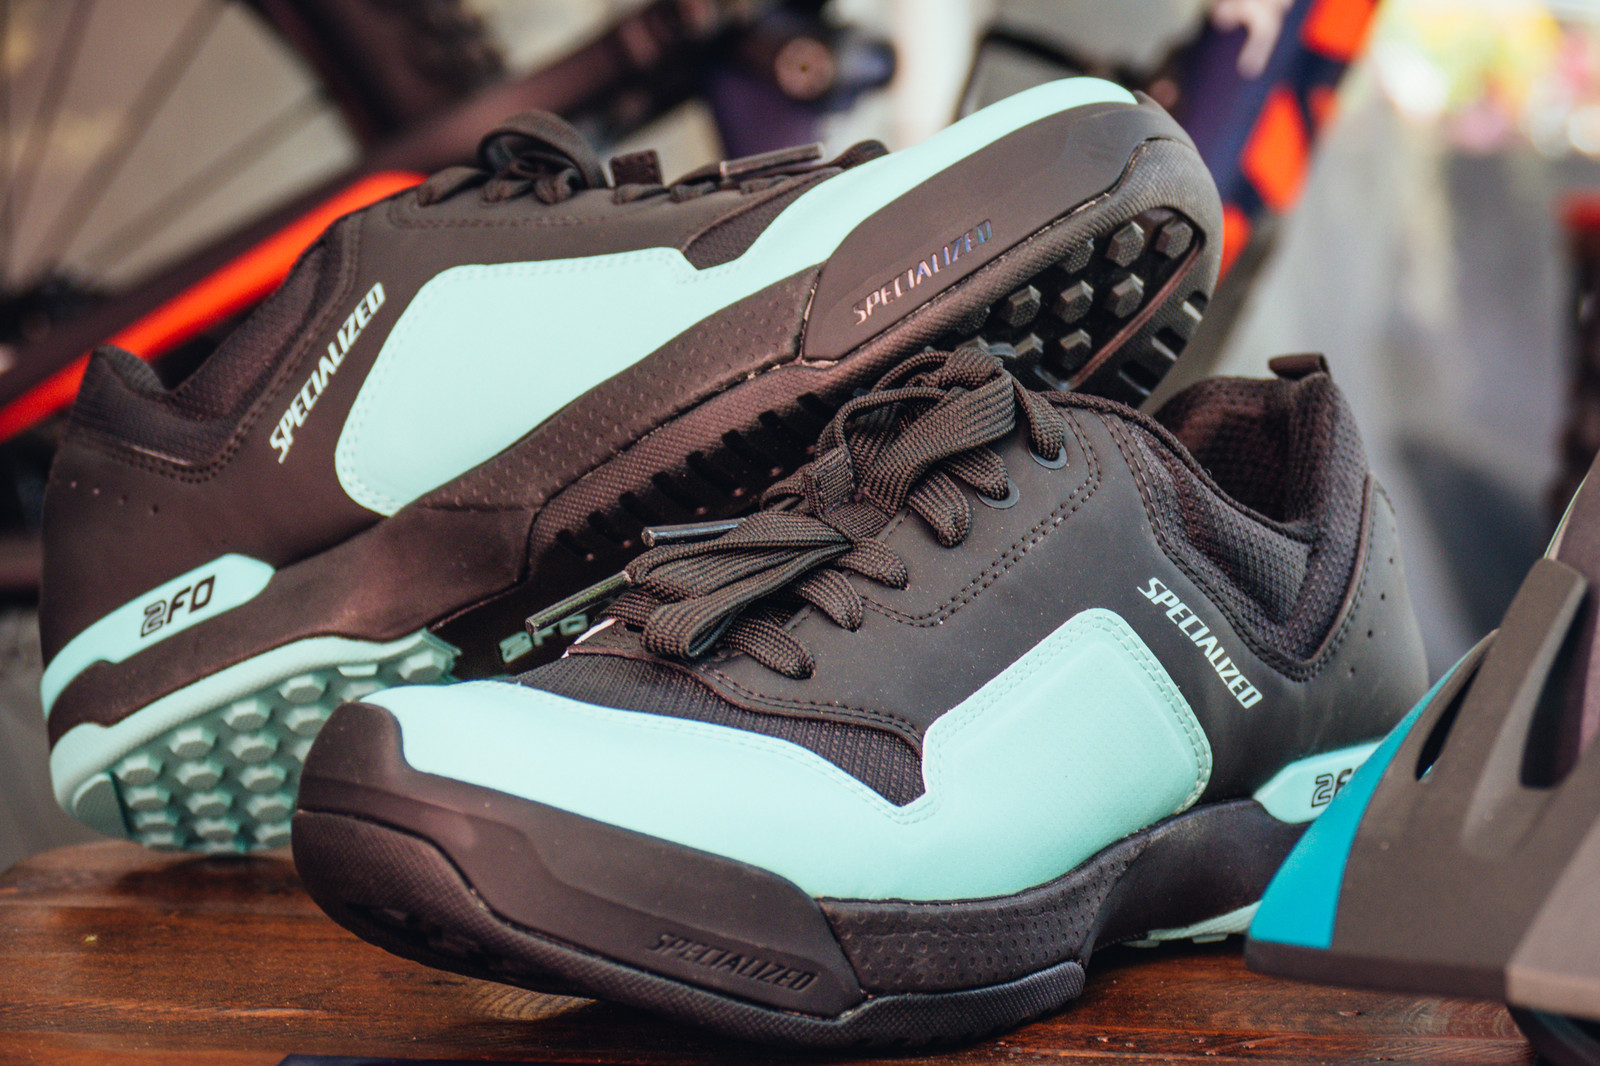 Women's Specialized 2FO Cliplite Shoes - PIT BITS - New 2017 Products from Crankworx Whistler - Mountain Biking Pictures - Vital MTB